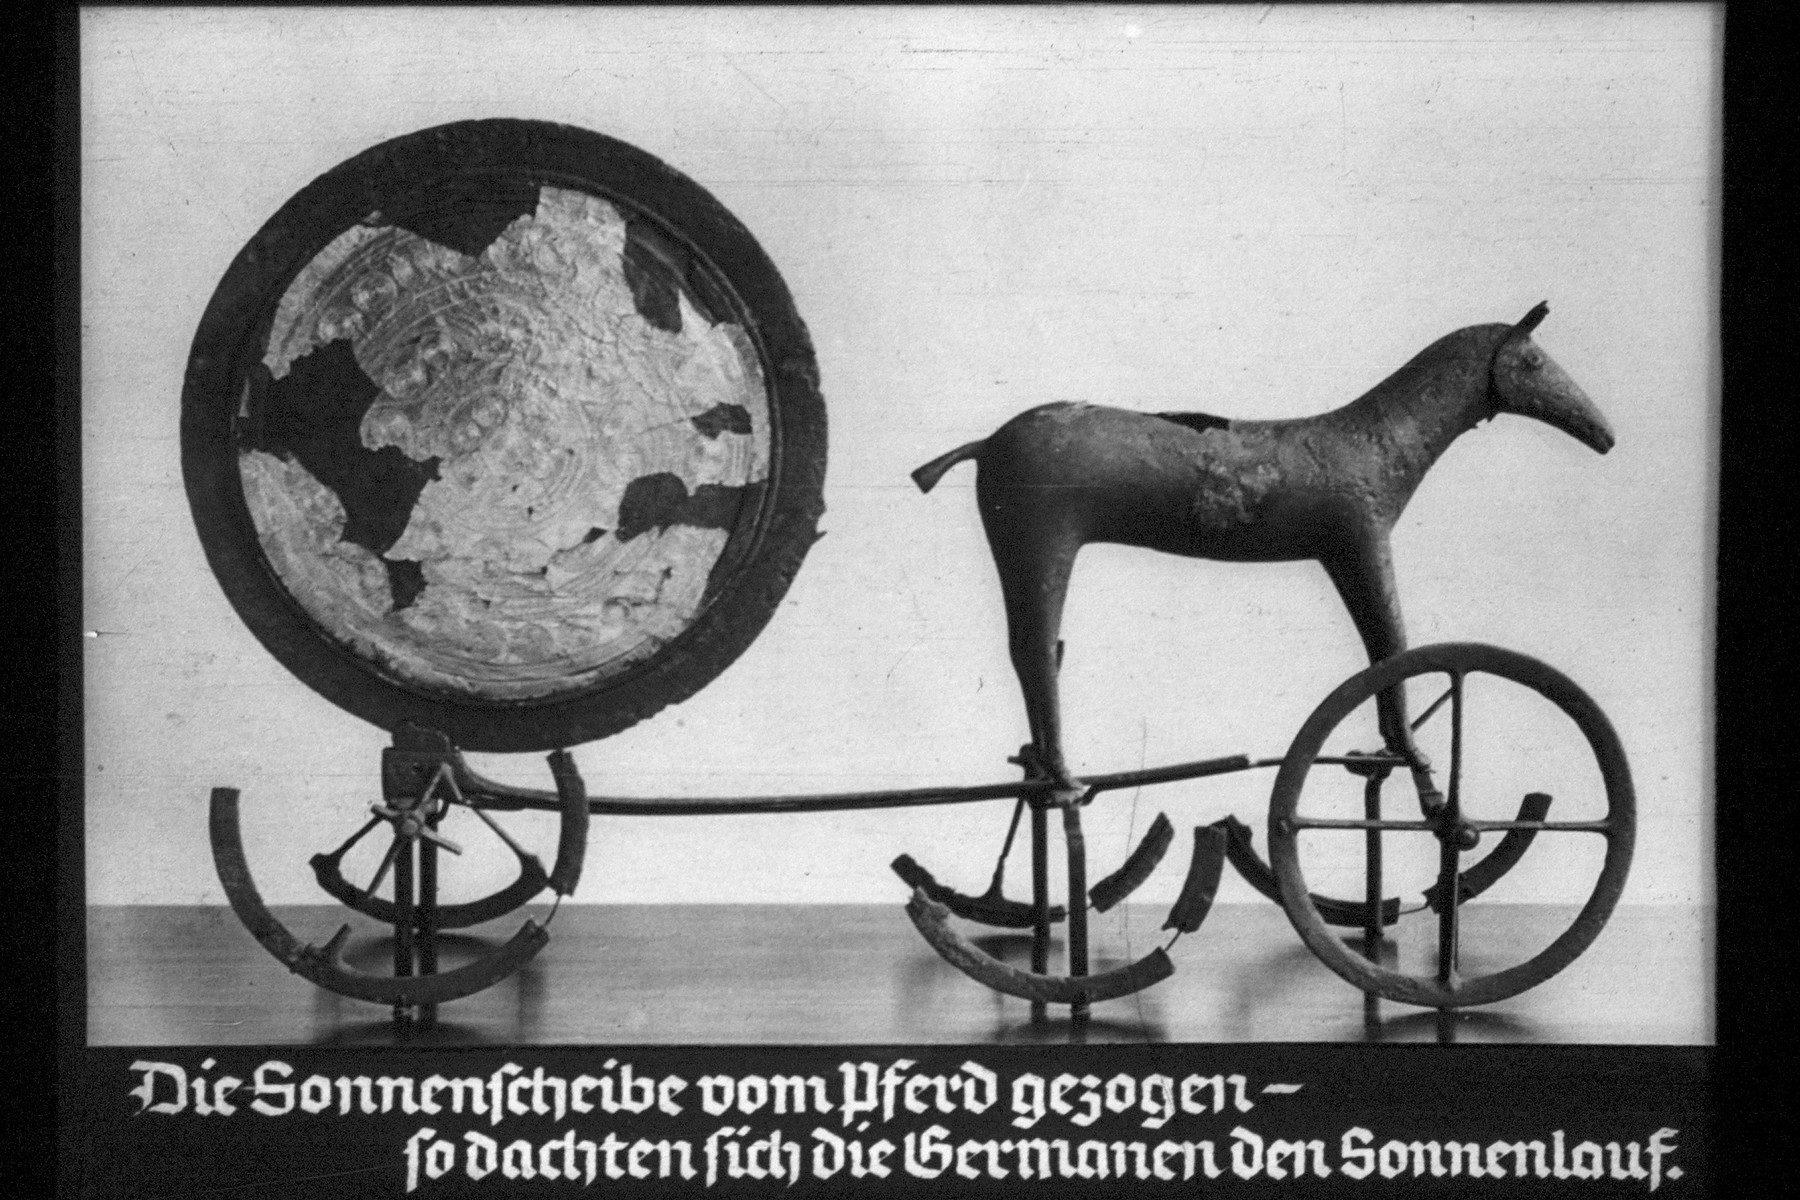 """24th Nazi propaganda slide for a Hitler Youth educational presentation entitled """"5000 years of German Culture.""""  Die Sonnenscheibe vom Pferd gezogen--so dachten sich die Germanen den Sonnenlauf // The solar disk pulled by a horse - that's how the Germans imagined the sun's path"""